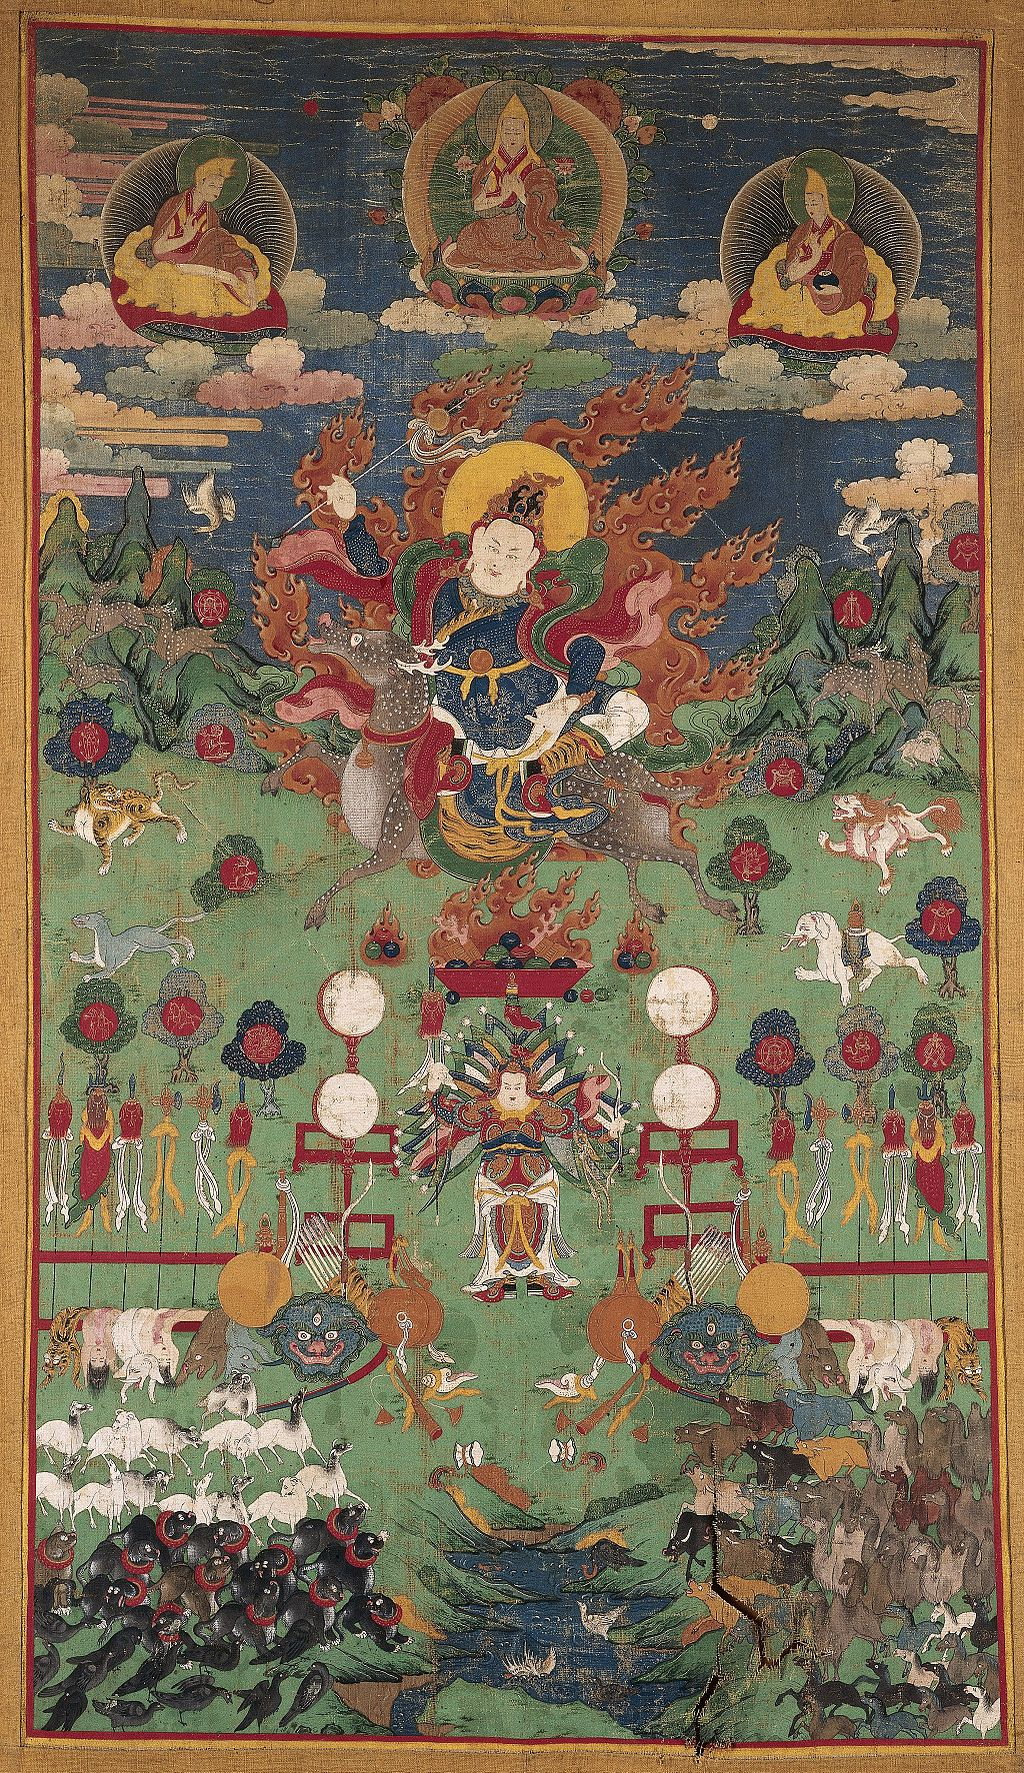 Marseille/Gesar_of_Ling_riding_a_reindeer._Distemper_painting._Wellcome_L0040370.jpg